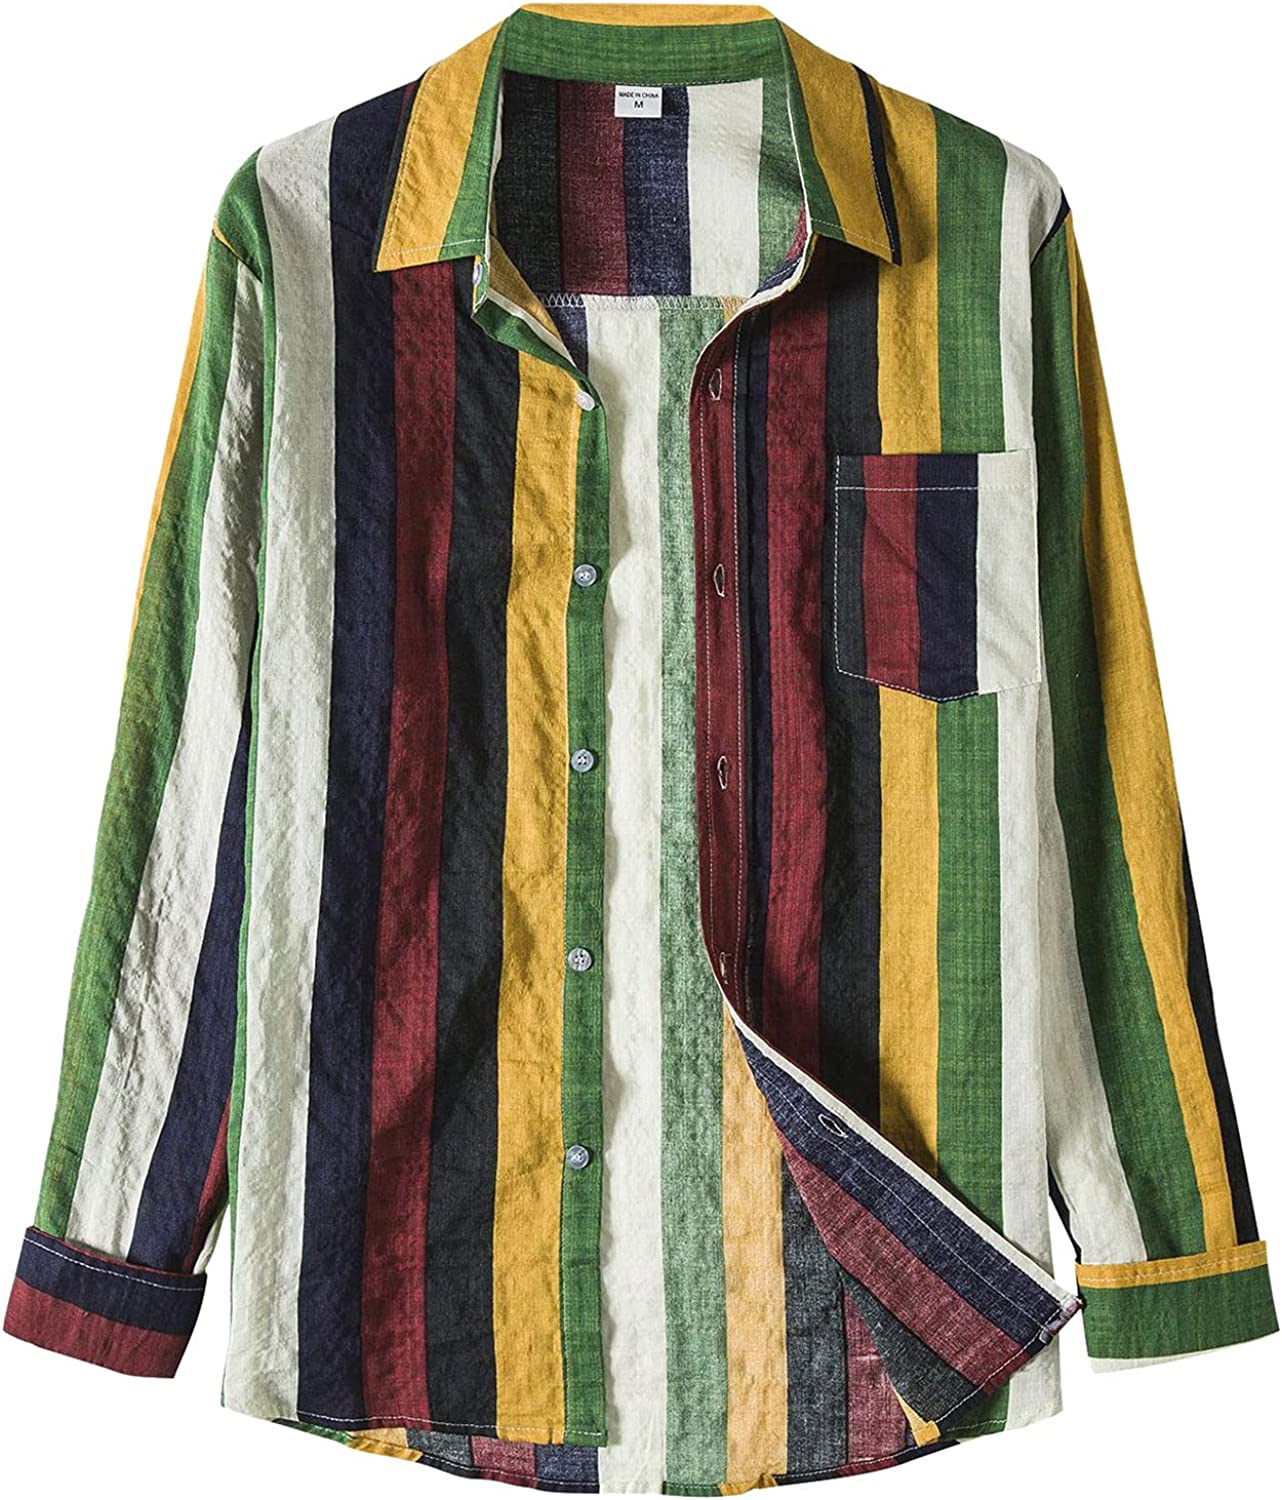 Mens Classic Color Block Lightweight Flannel Jackets Striped Long Sleeve Vintage Button Down Shirts Tops Sweatshirts